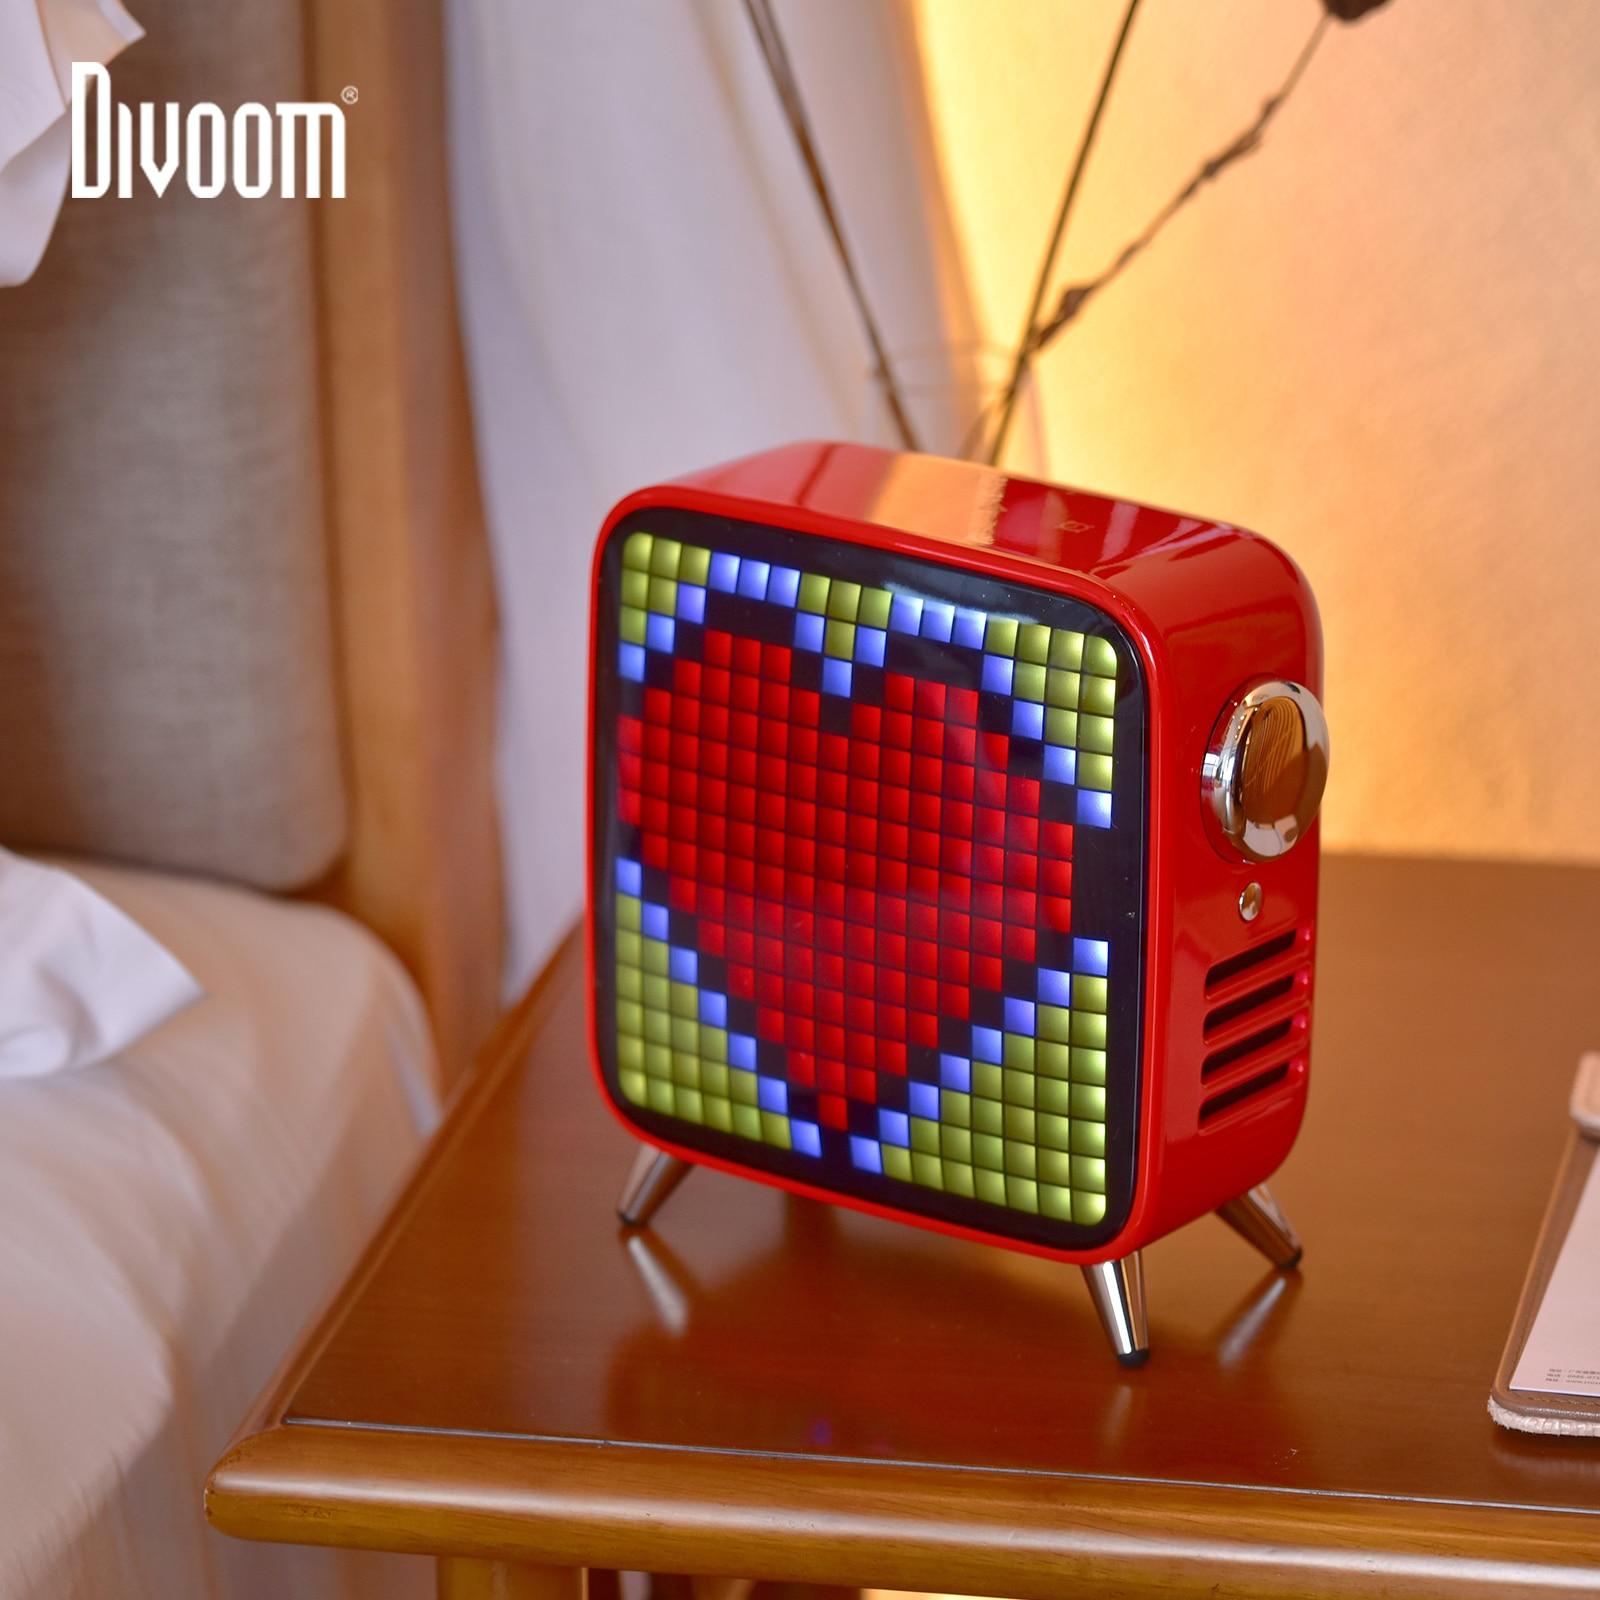 Divoom Tivoo Max Pixel Art Bluetooth Wireless Speaker with 2.1 Audio System 40W Output Heavy Bass App control for IOS & Android